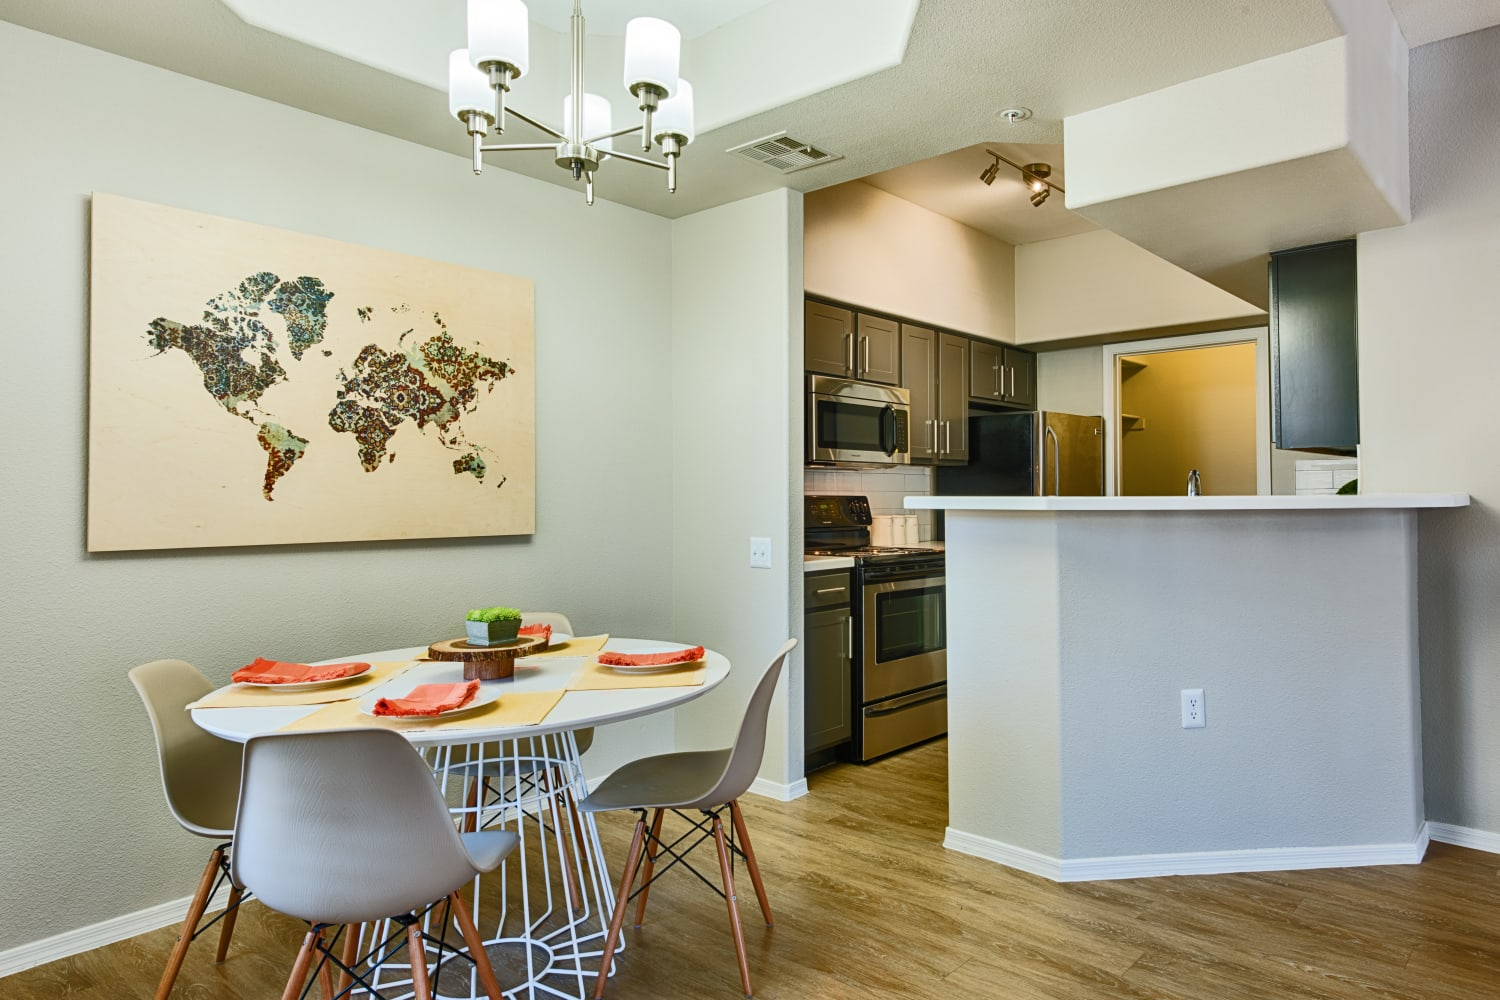 Sonoran Vista Apartments in Scottsdale, Arizona, offer open dining areas